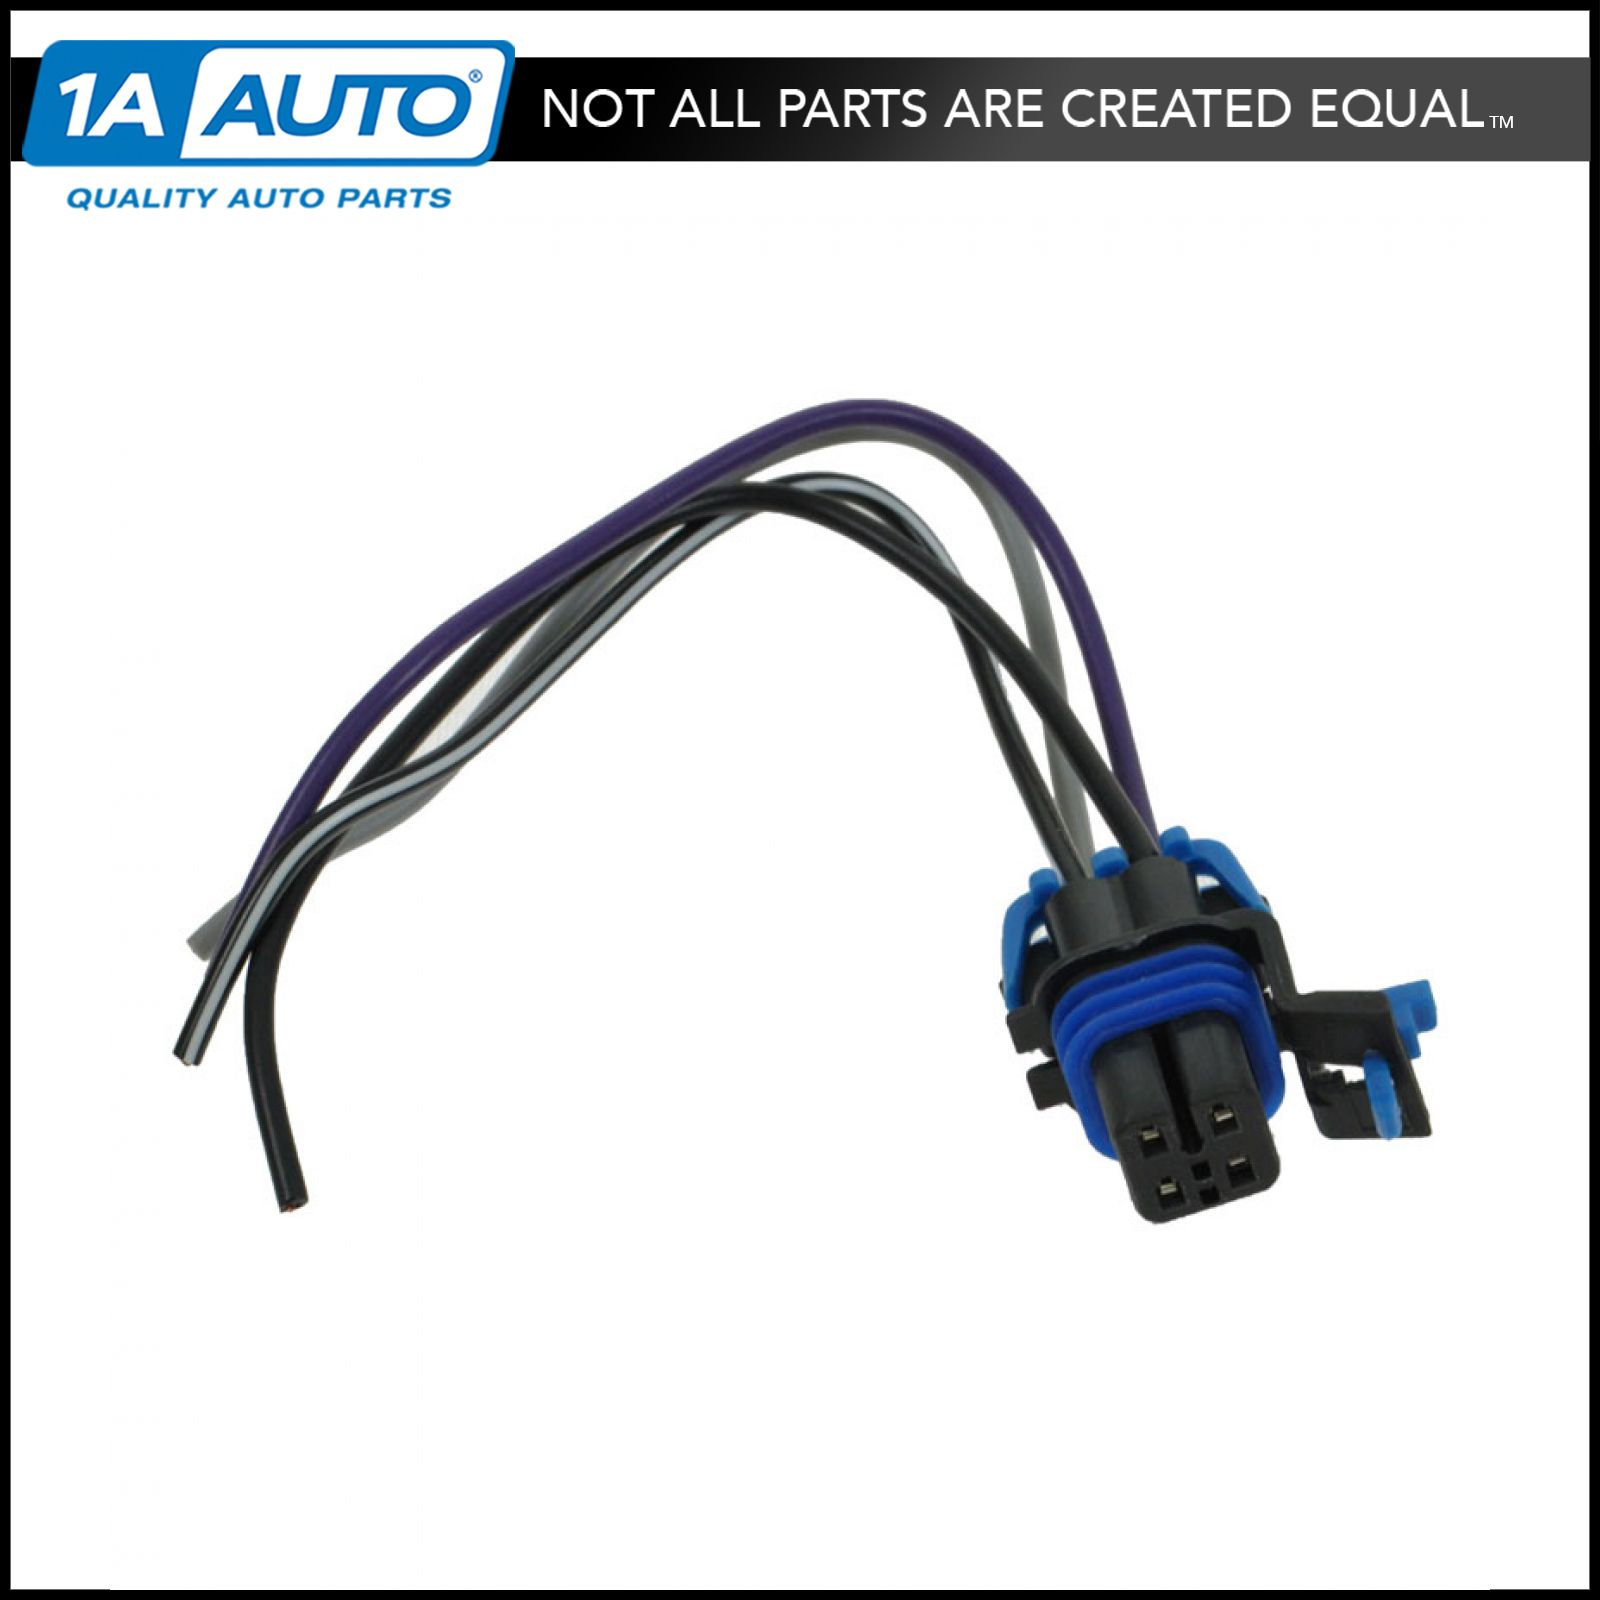 details about fuel pump wiring harness with square connector 4 wire pigtail for chevy gm Wiring Harness for Carburetor